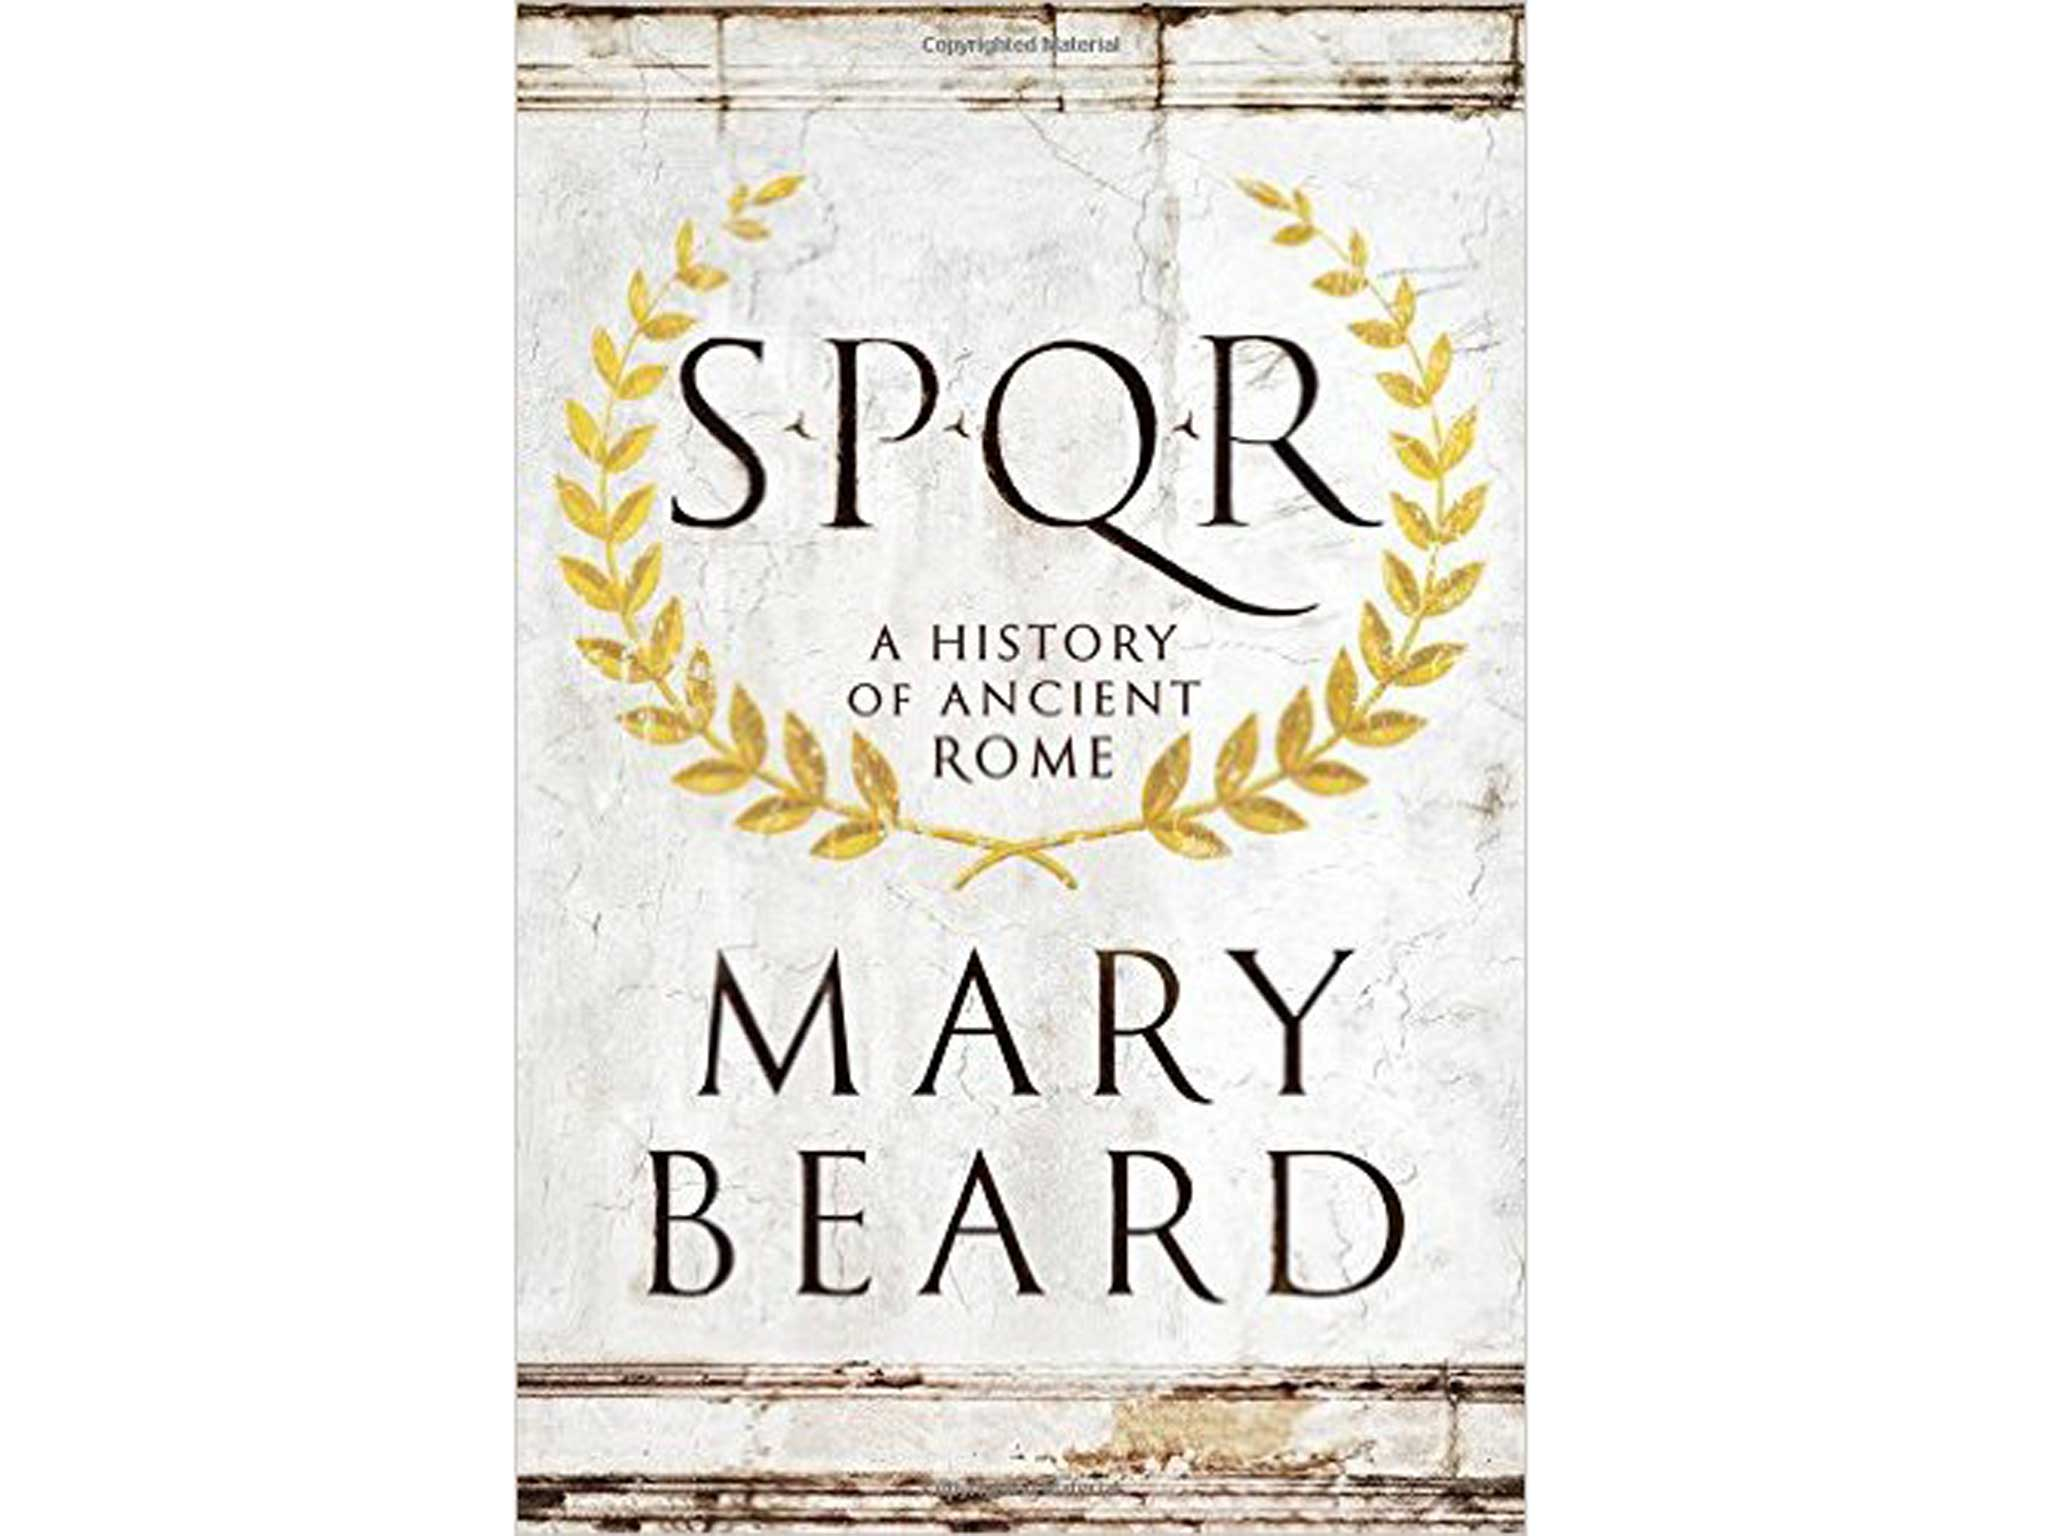 10 best history books | The Independent